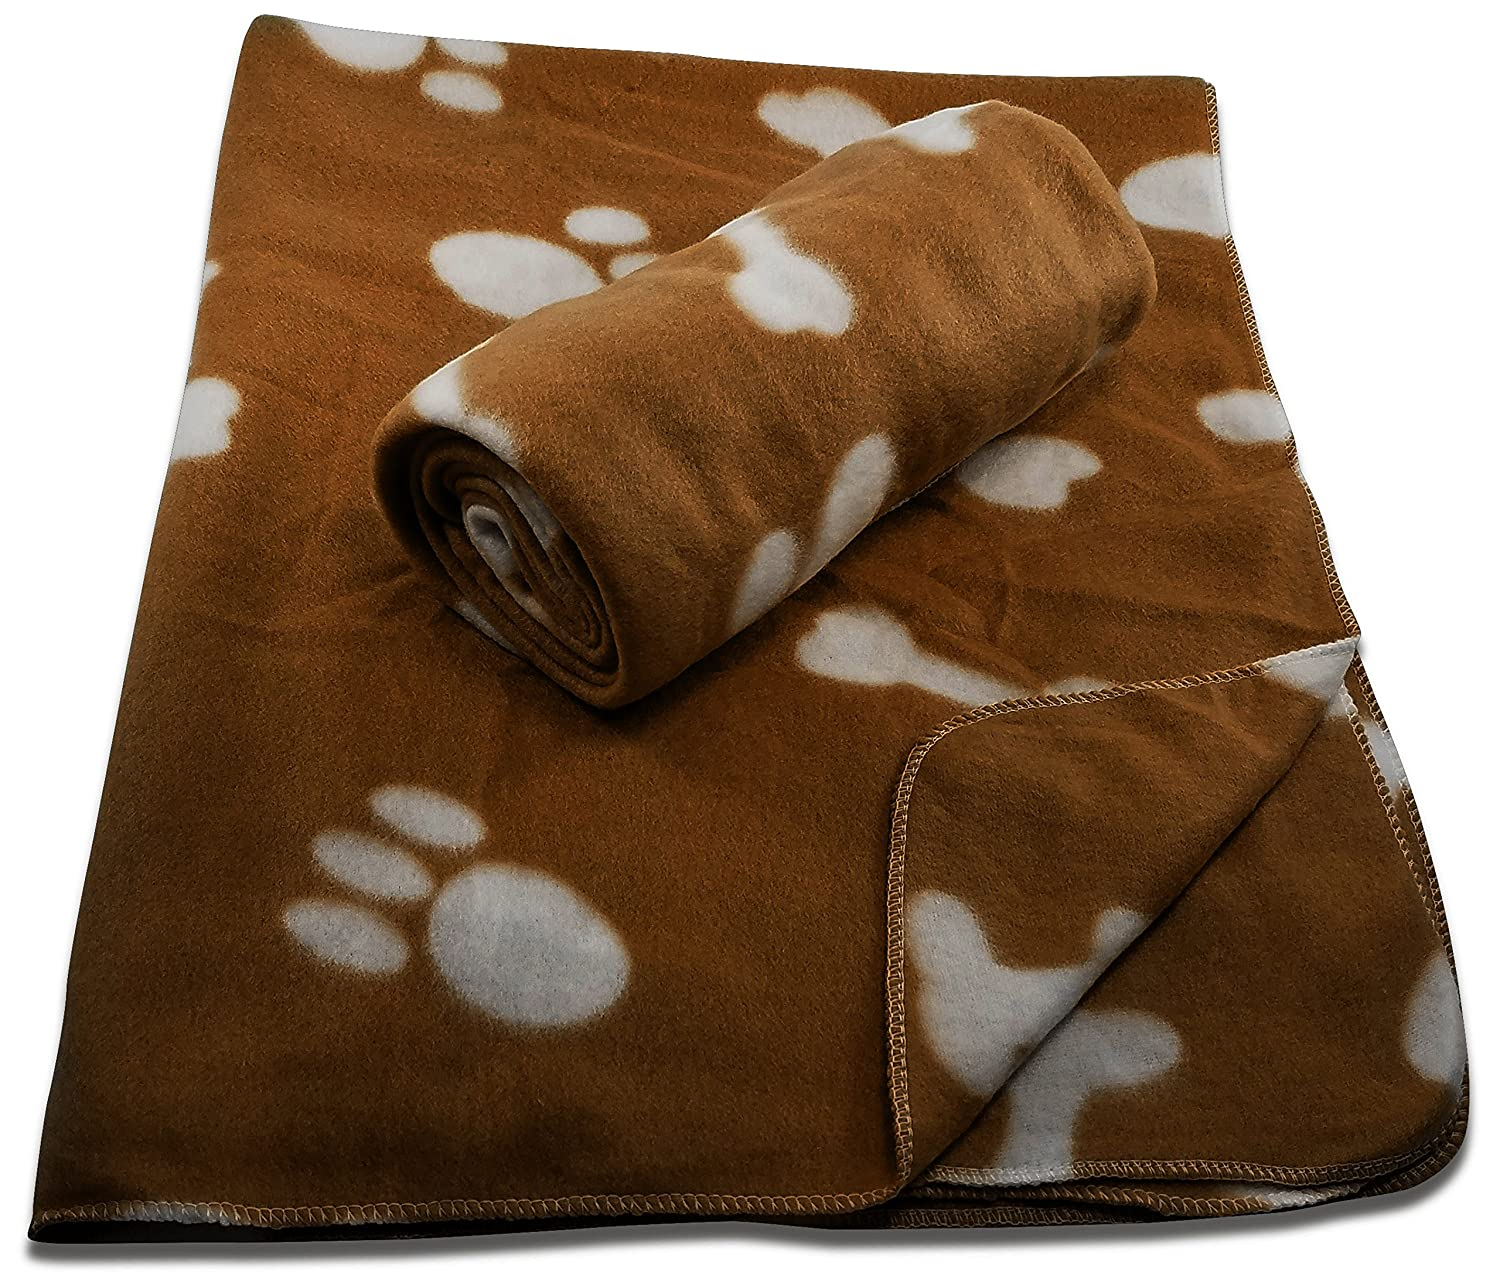 38 x 30 Inch Dog Blanket with Paw Print and Bones Pattern by FIDO Care (Set of 2 Fleece)